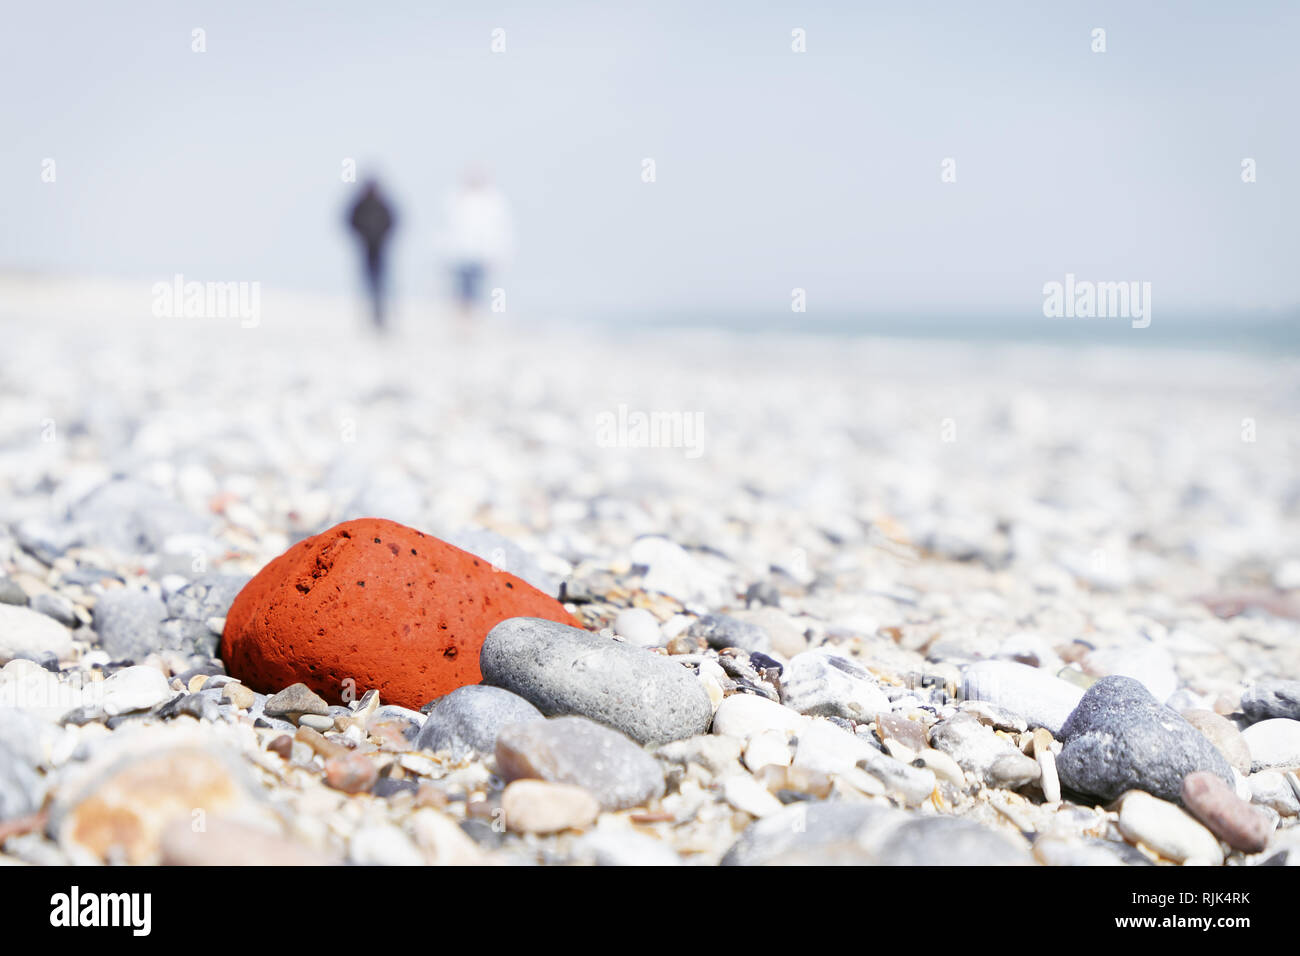 Bright stone beach with a striking red stone in the focus area, behind it shadowy 2 people and the sea - close-up, perspective - Location: Germany, No - Stock Image